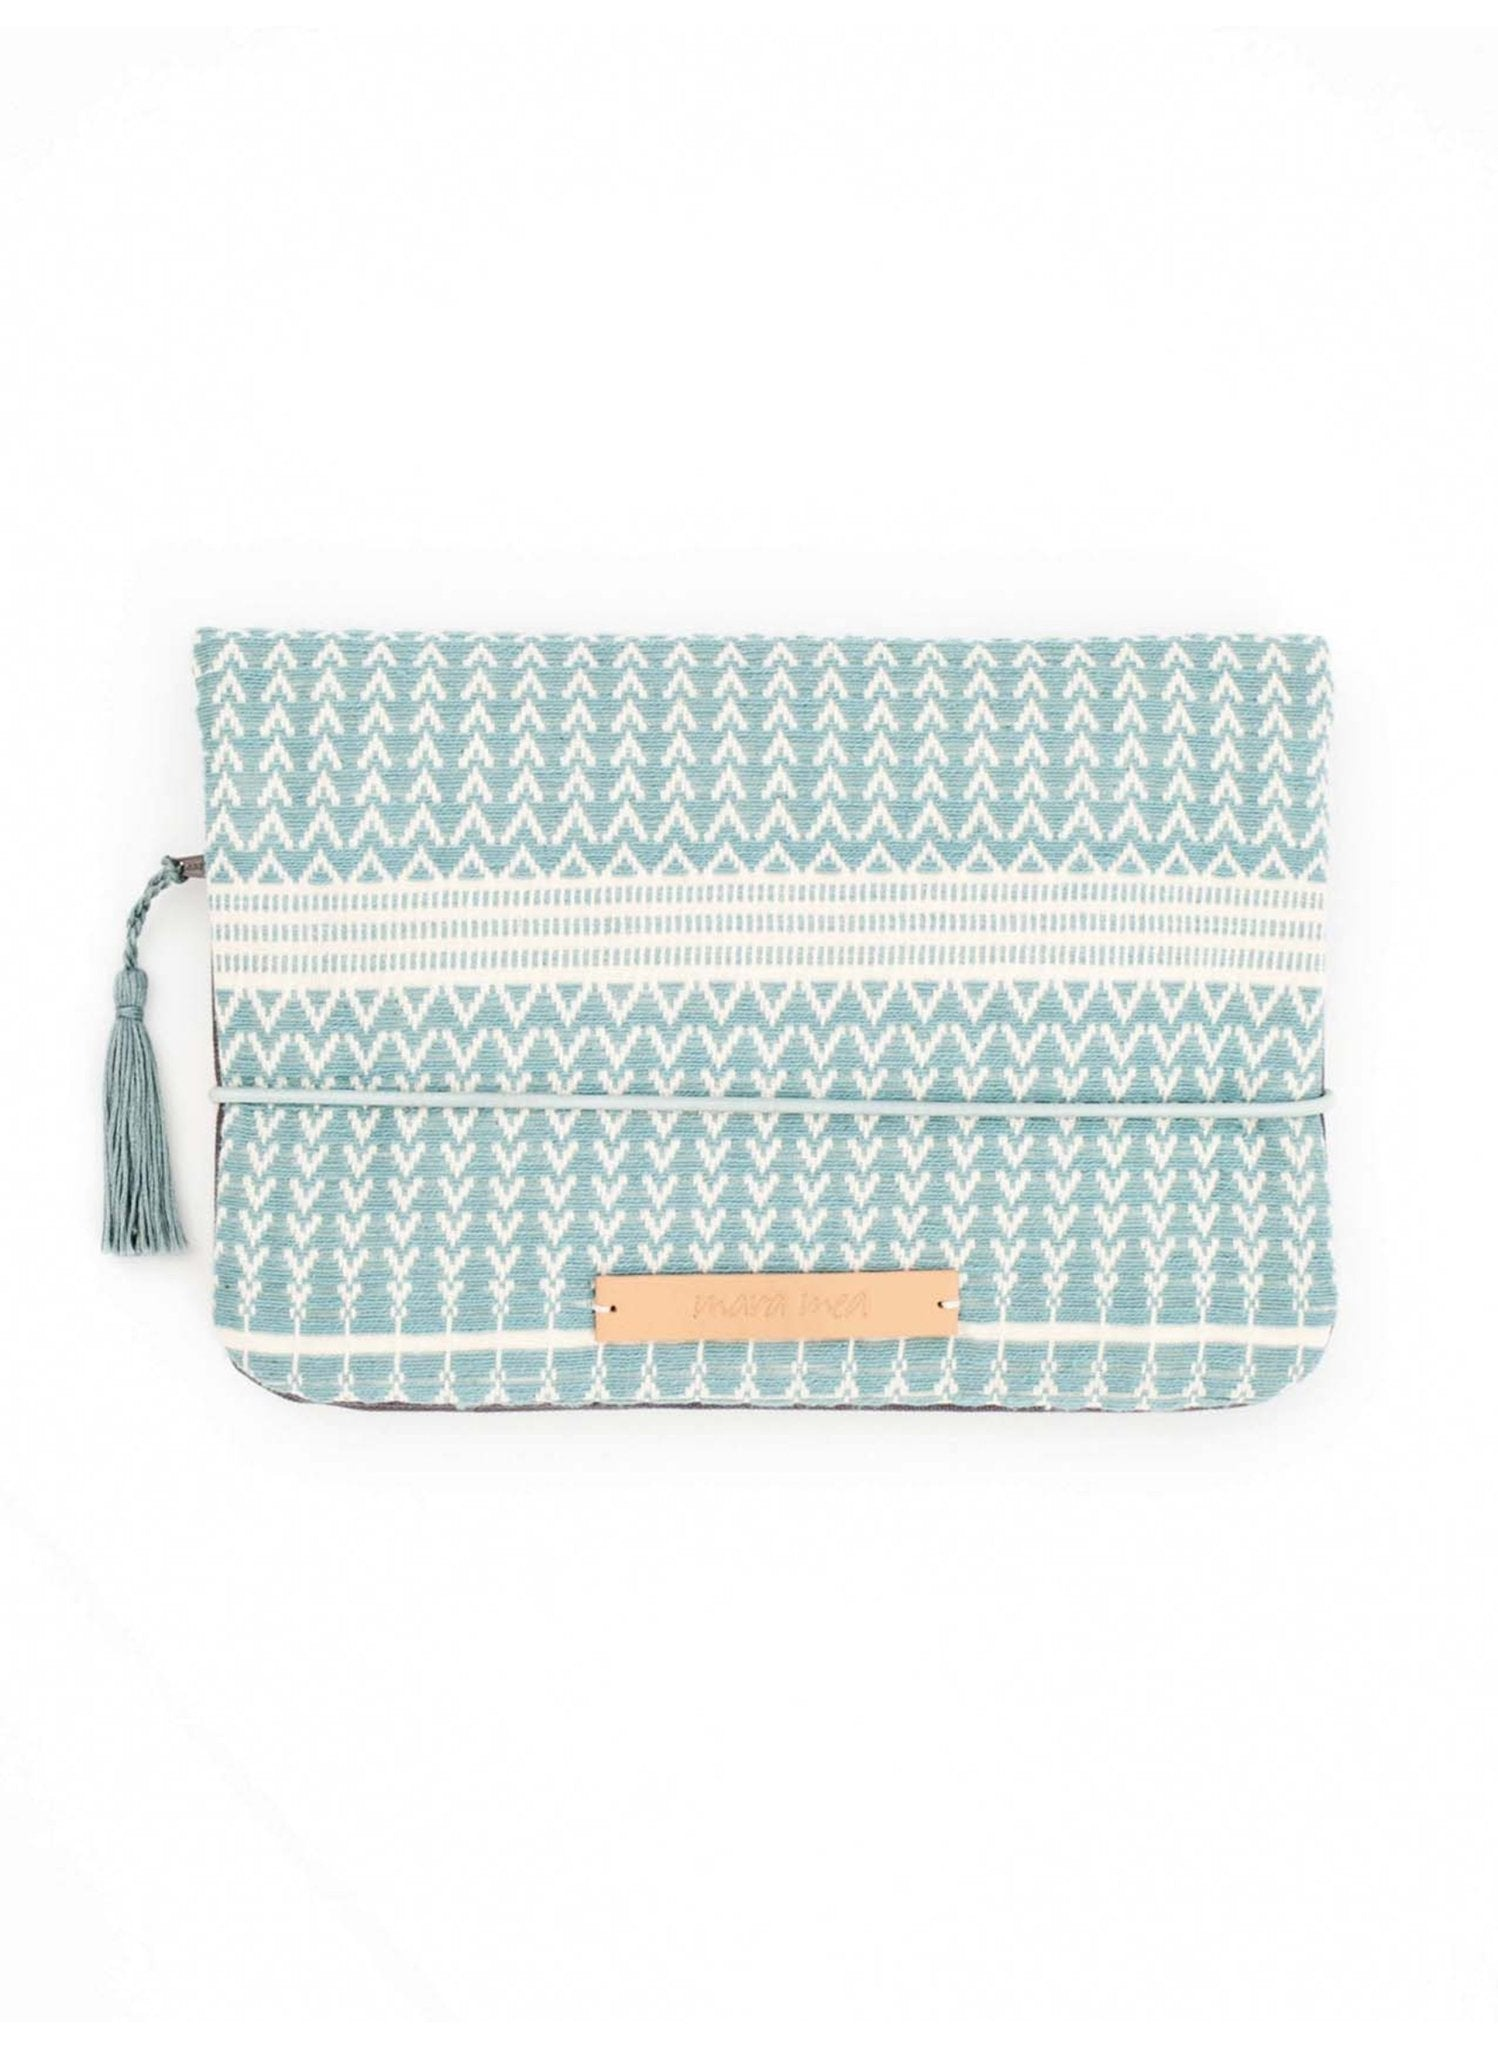 Diaper Clutch - Pelican Family - Mums and Bumps